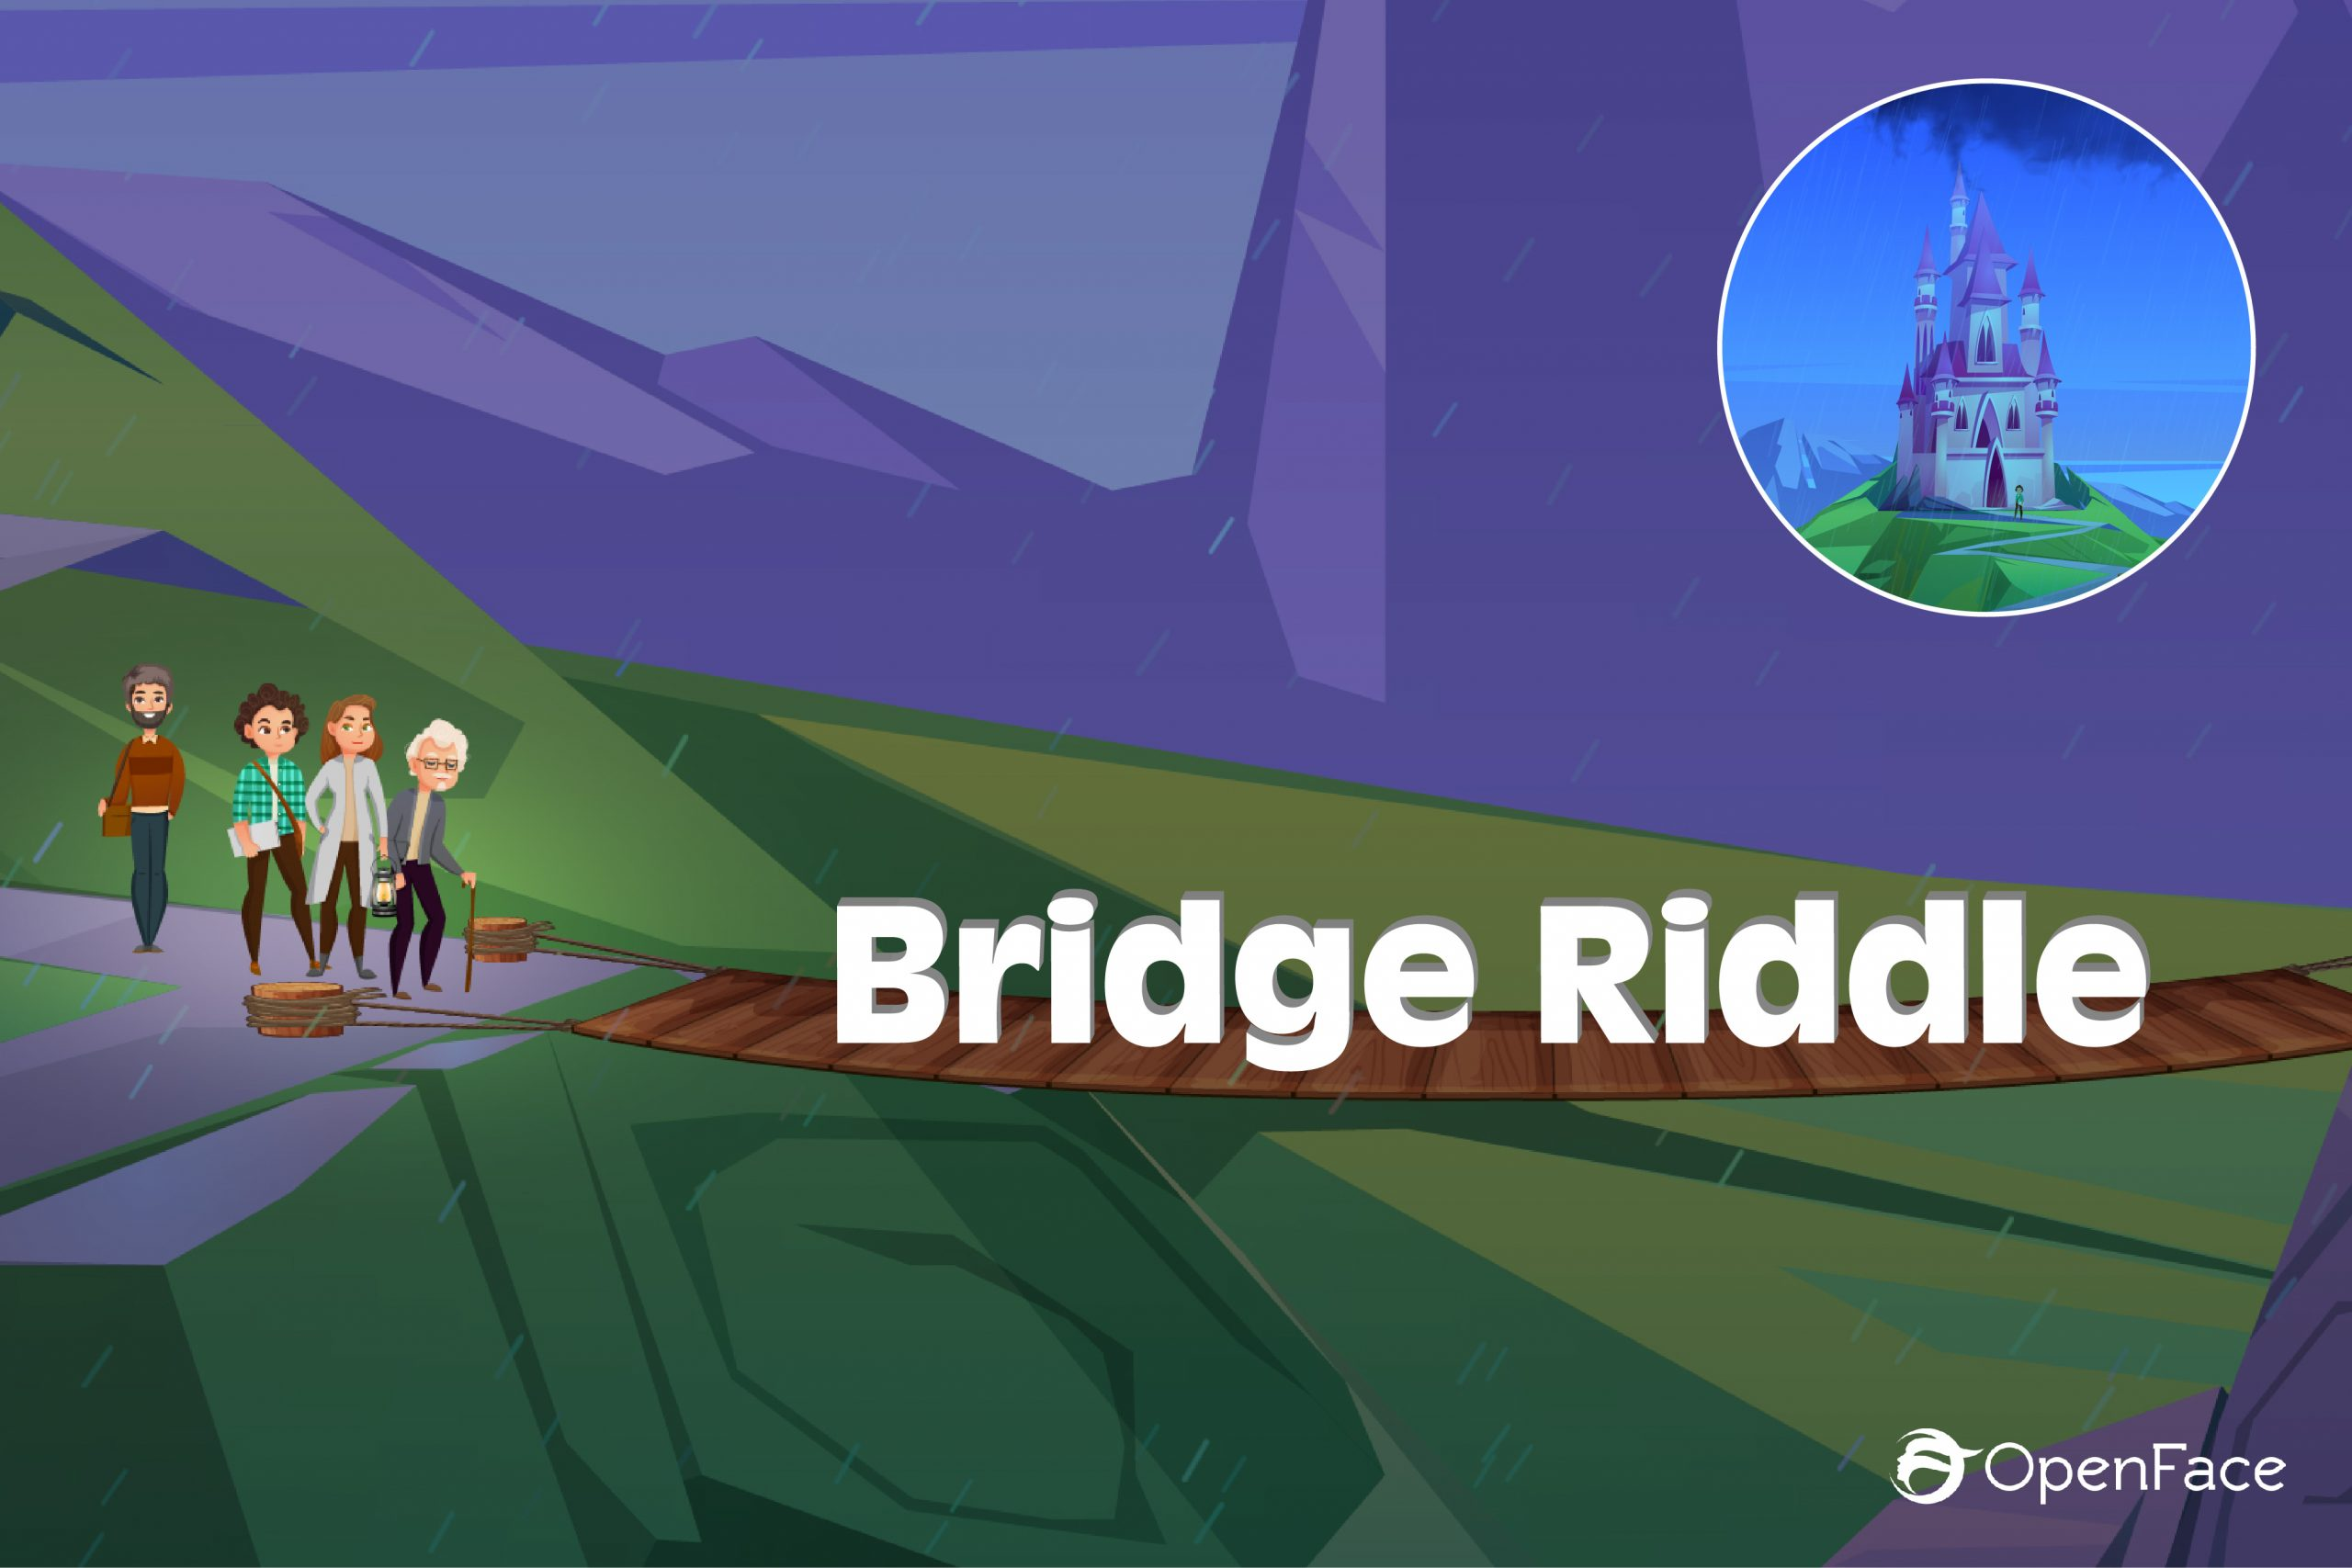 Bridge_riddle